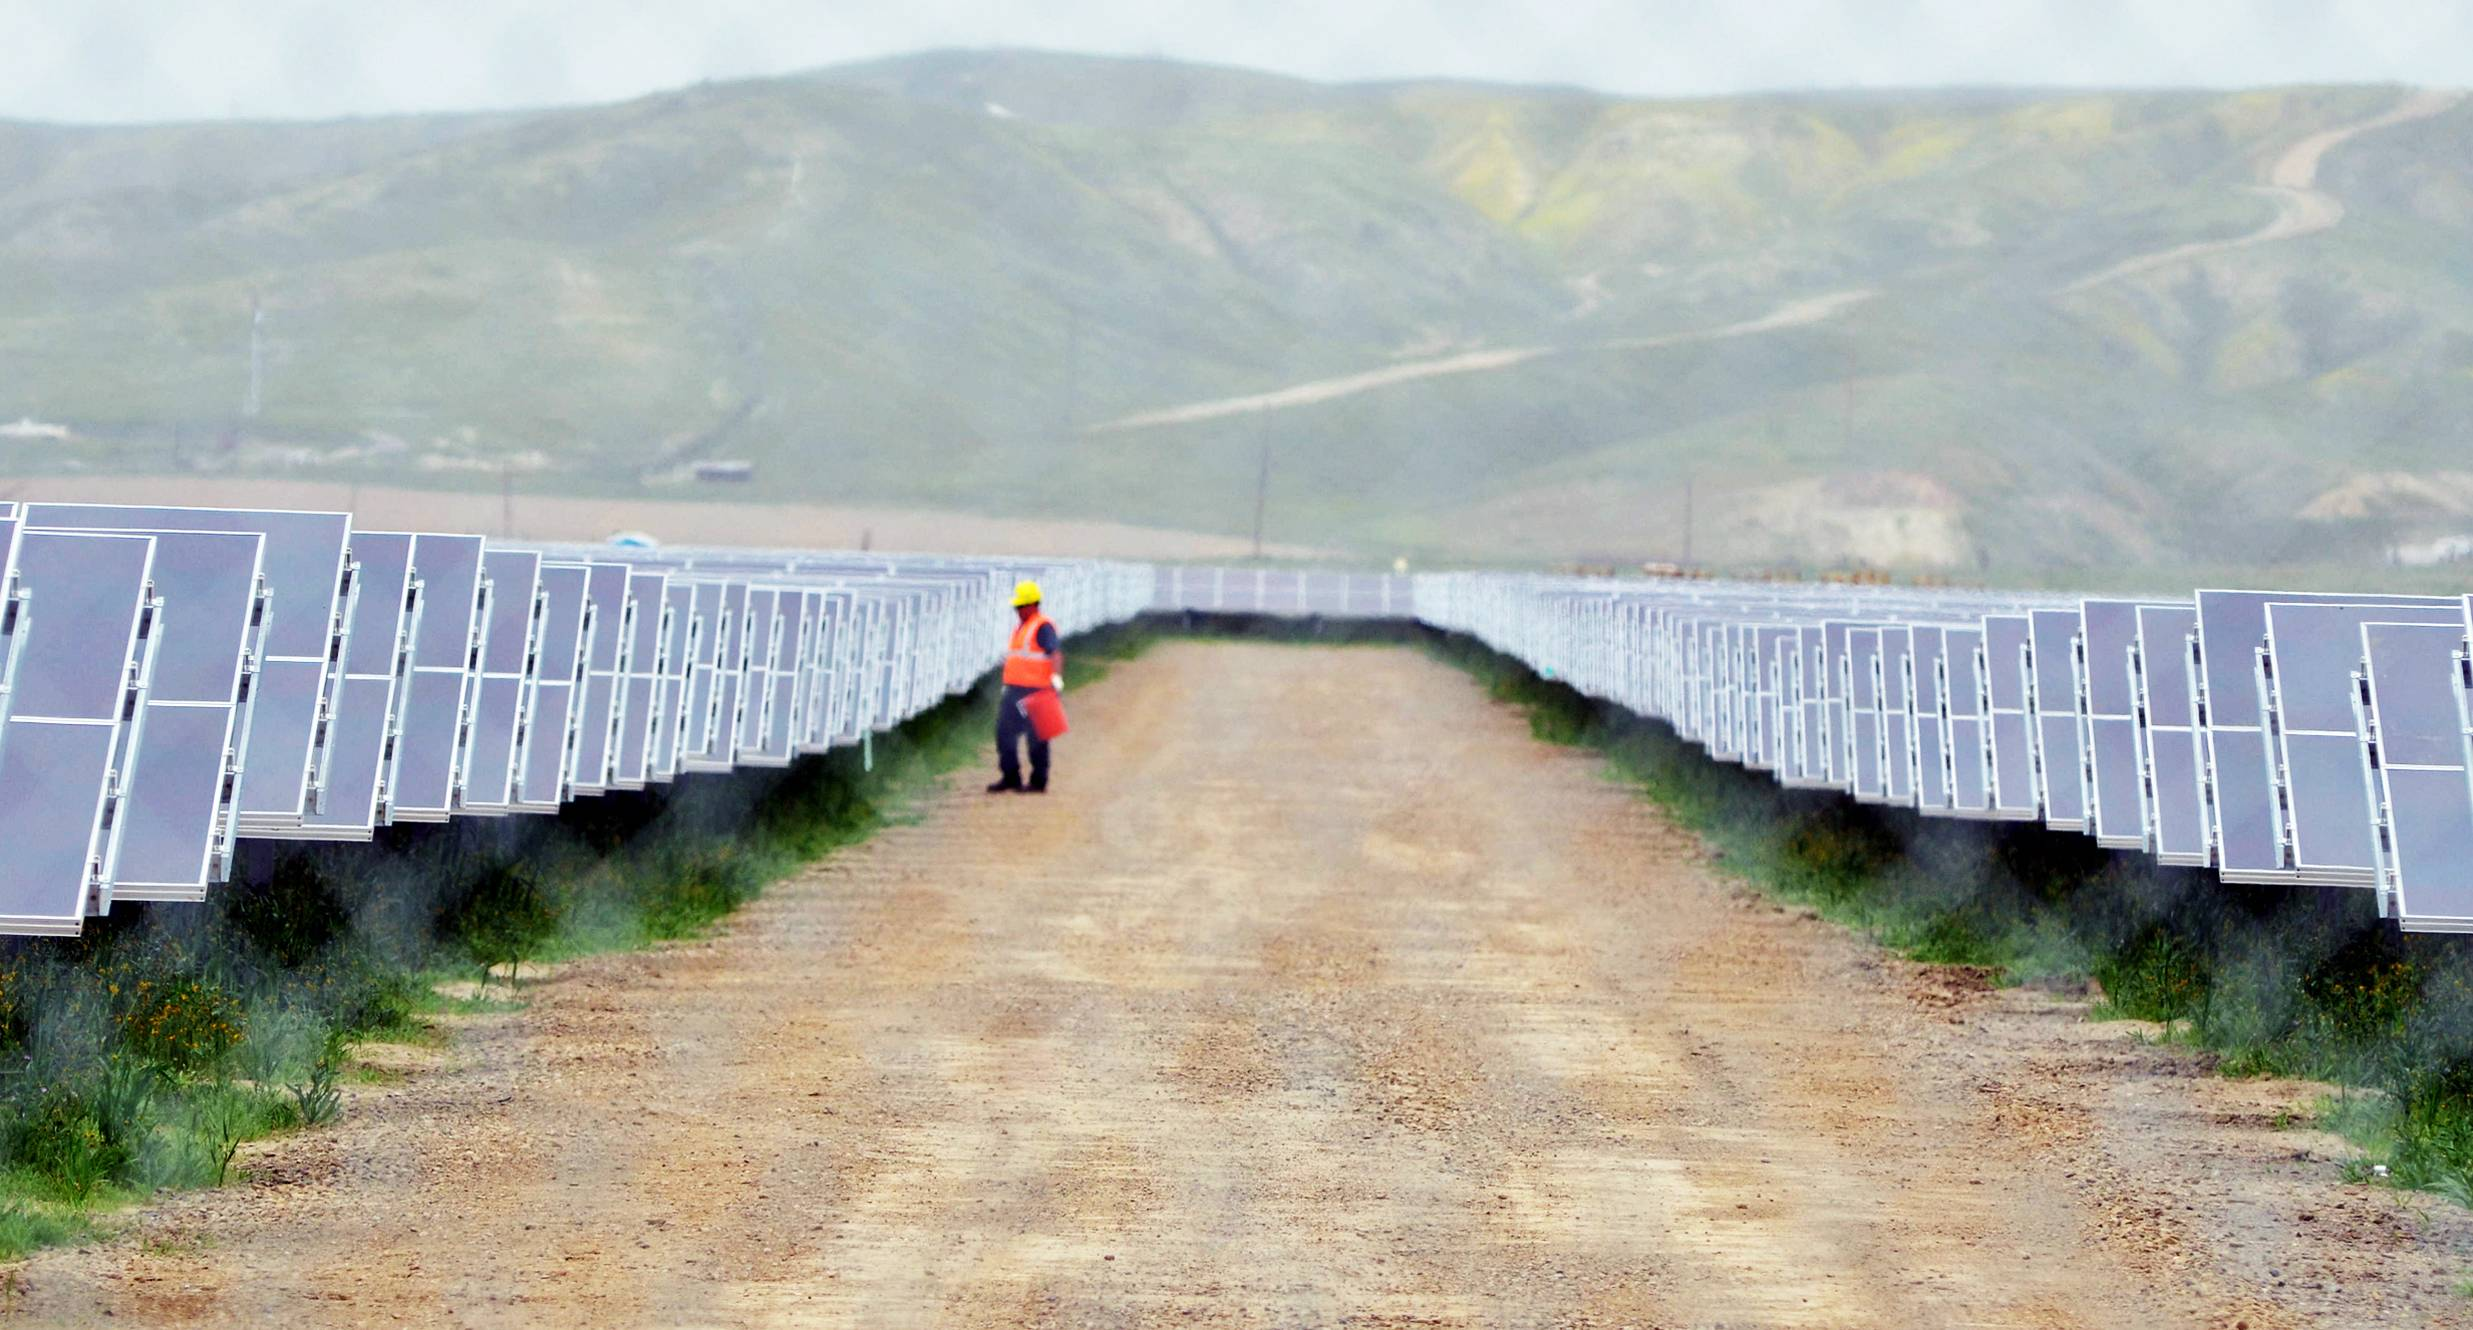 A worker looks over solar panels at the NRG Solar and Eurus Energy America Corp.'s 45-megawatt solar farm in Avenal, Calif. Energy companies are wrapping renewable energy projects and other power-related assets that generate steady cash into new companies they hope attract investors hunting for dividends.